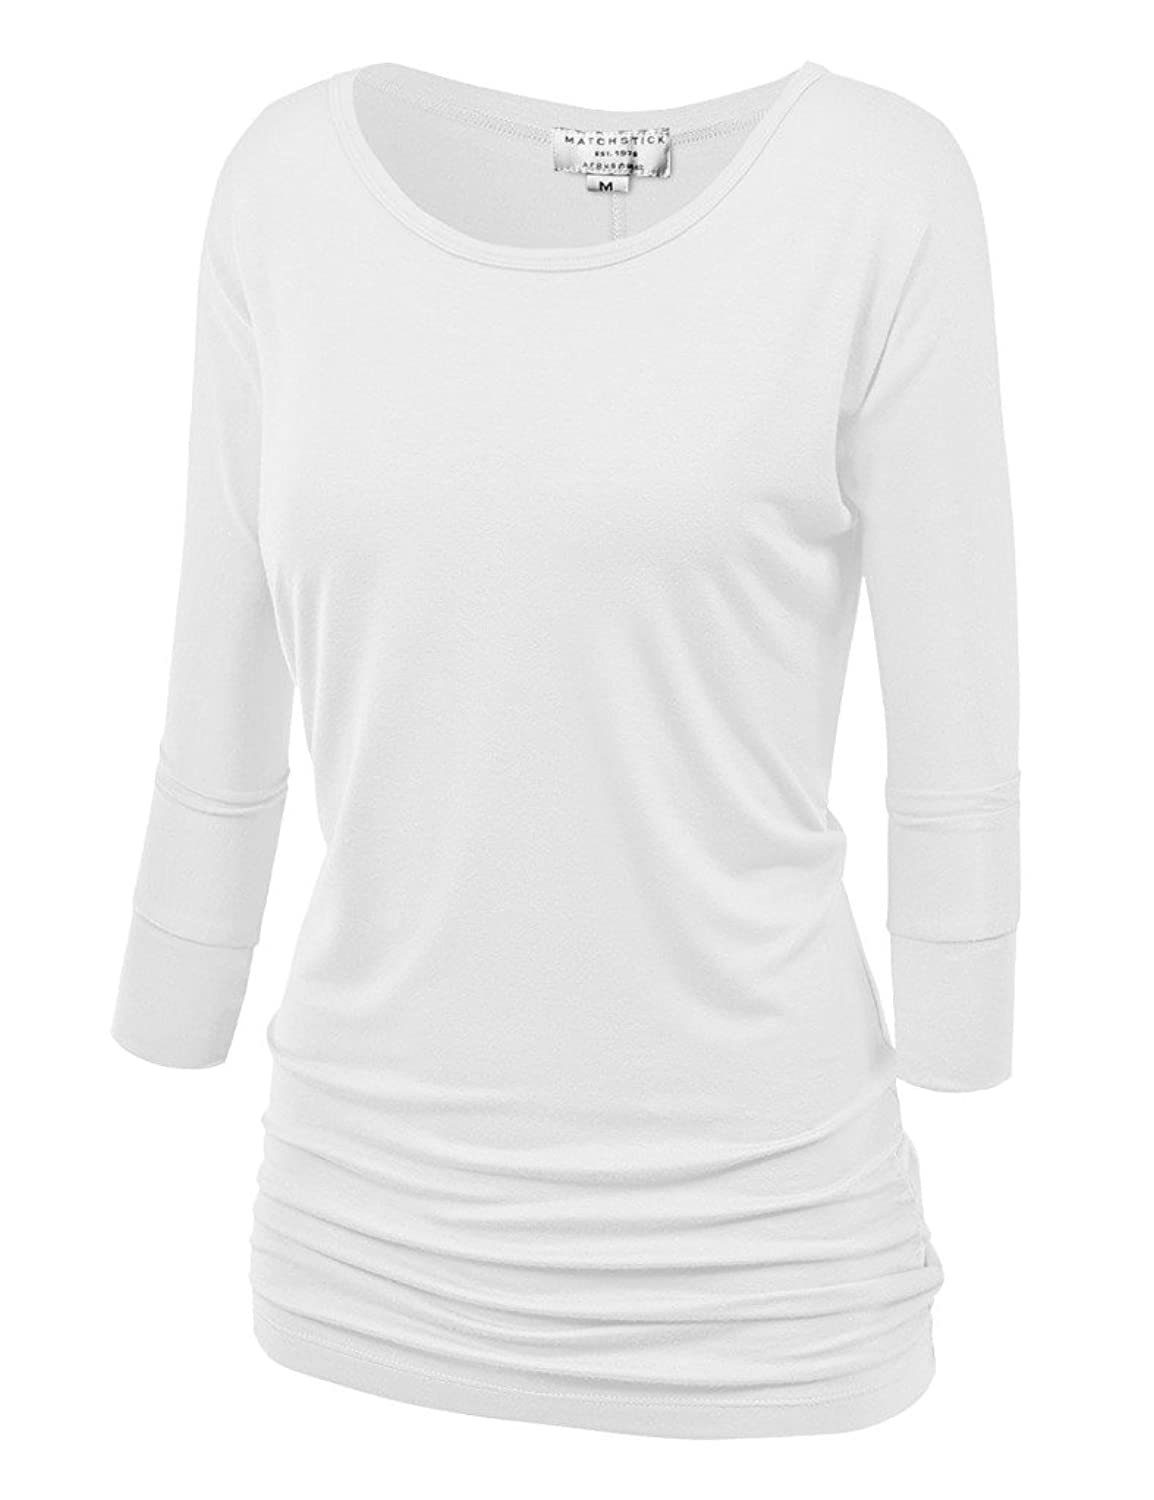 Match Women's 3/4 Sleeve Drape Top with Side Shirring